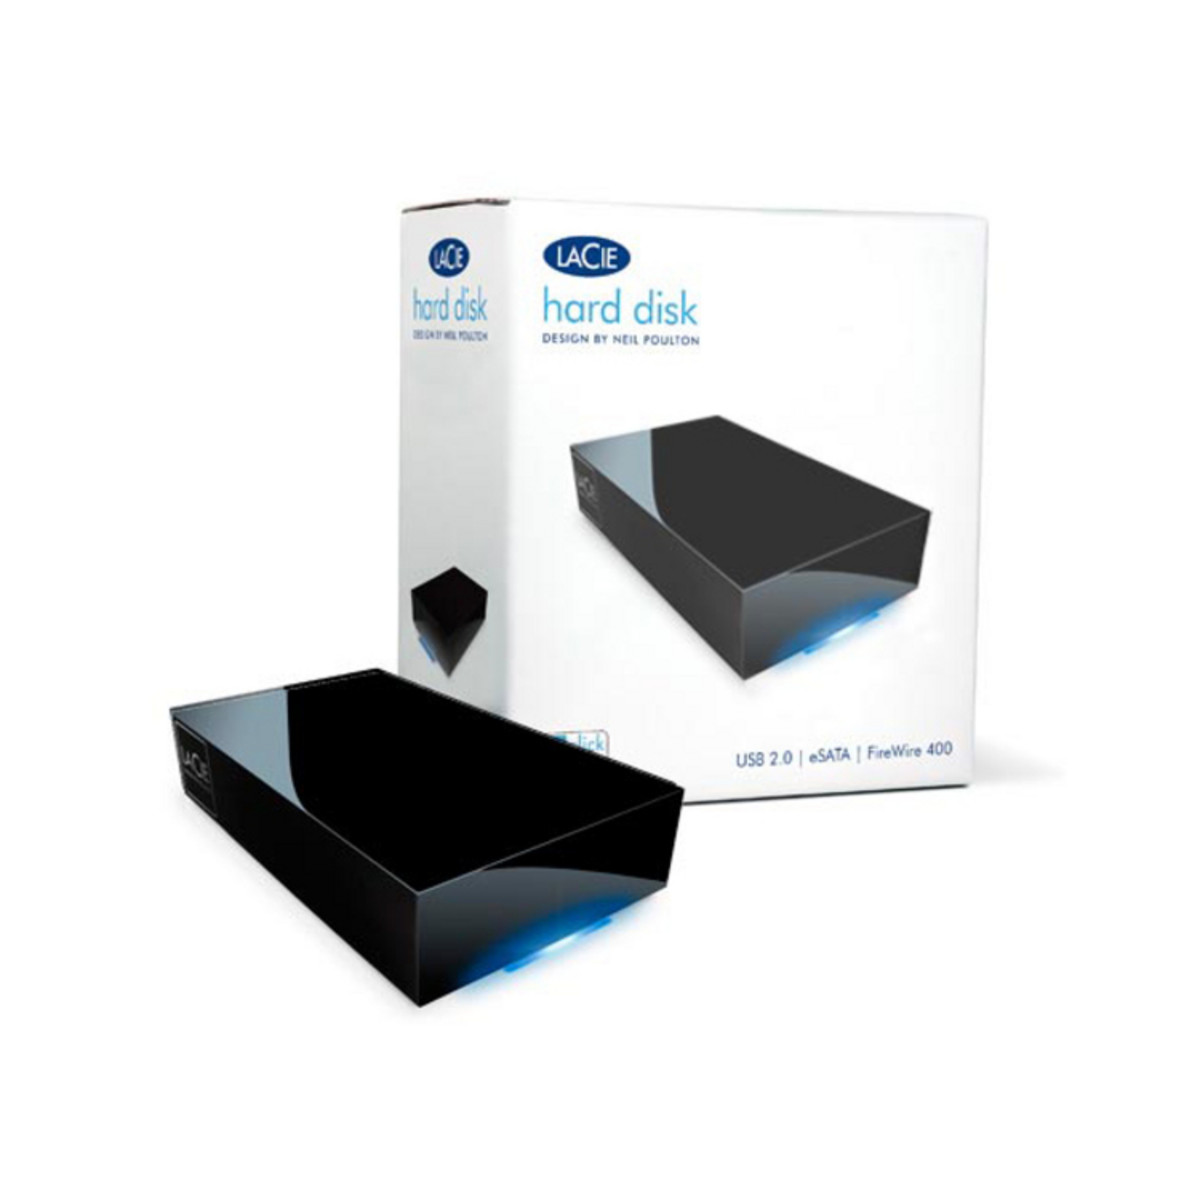 Disc 1tb External Hard Drive By Lacie Esata Firewire 400 Usb 20